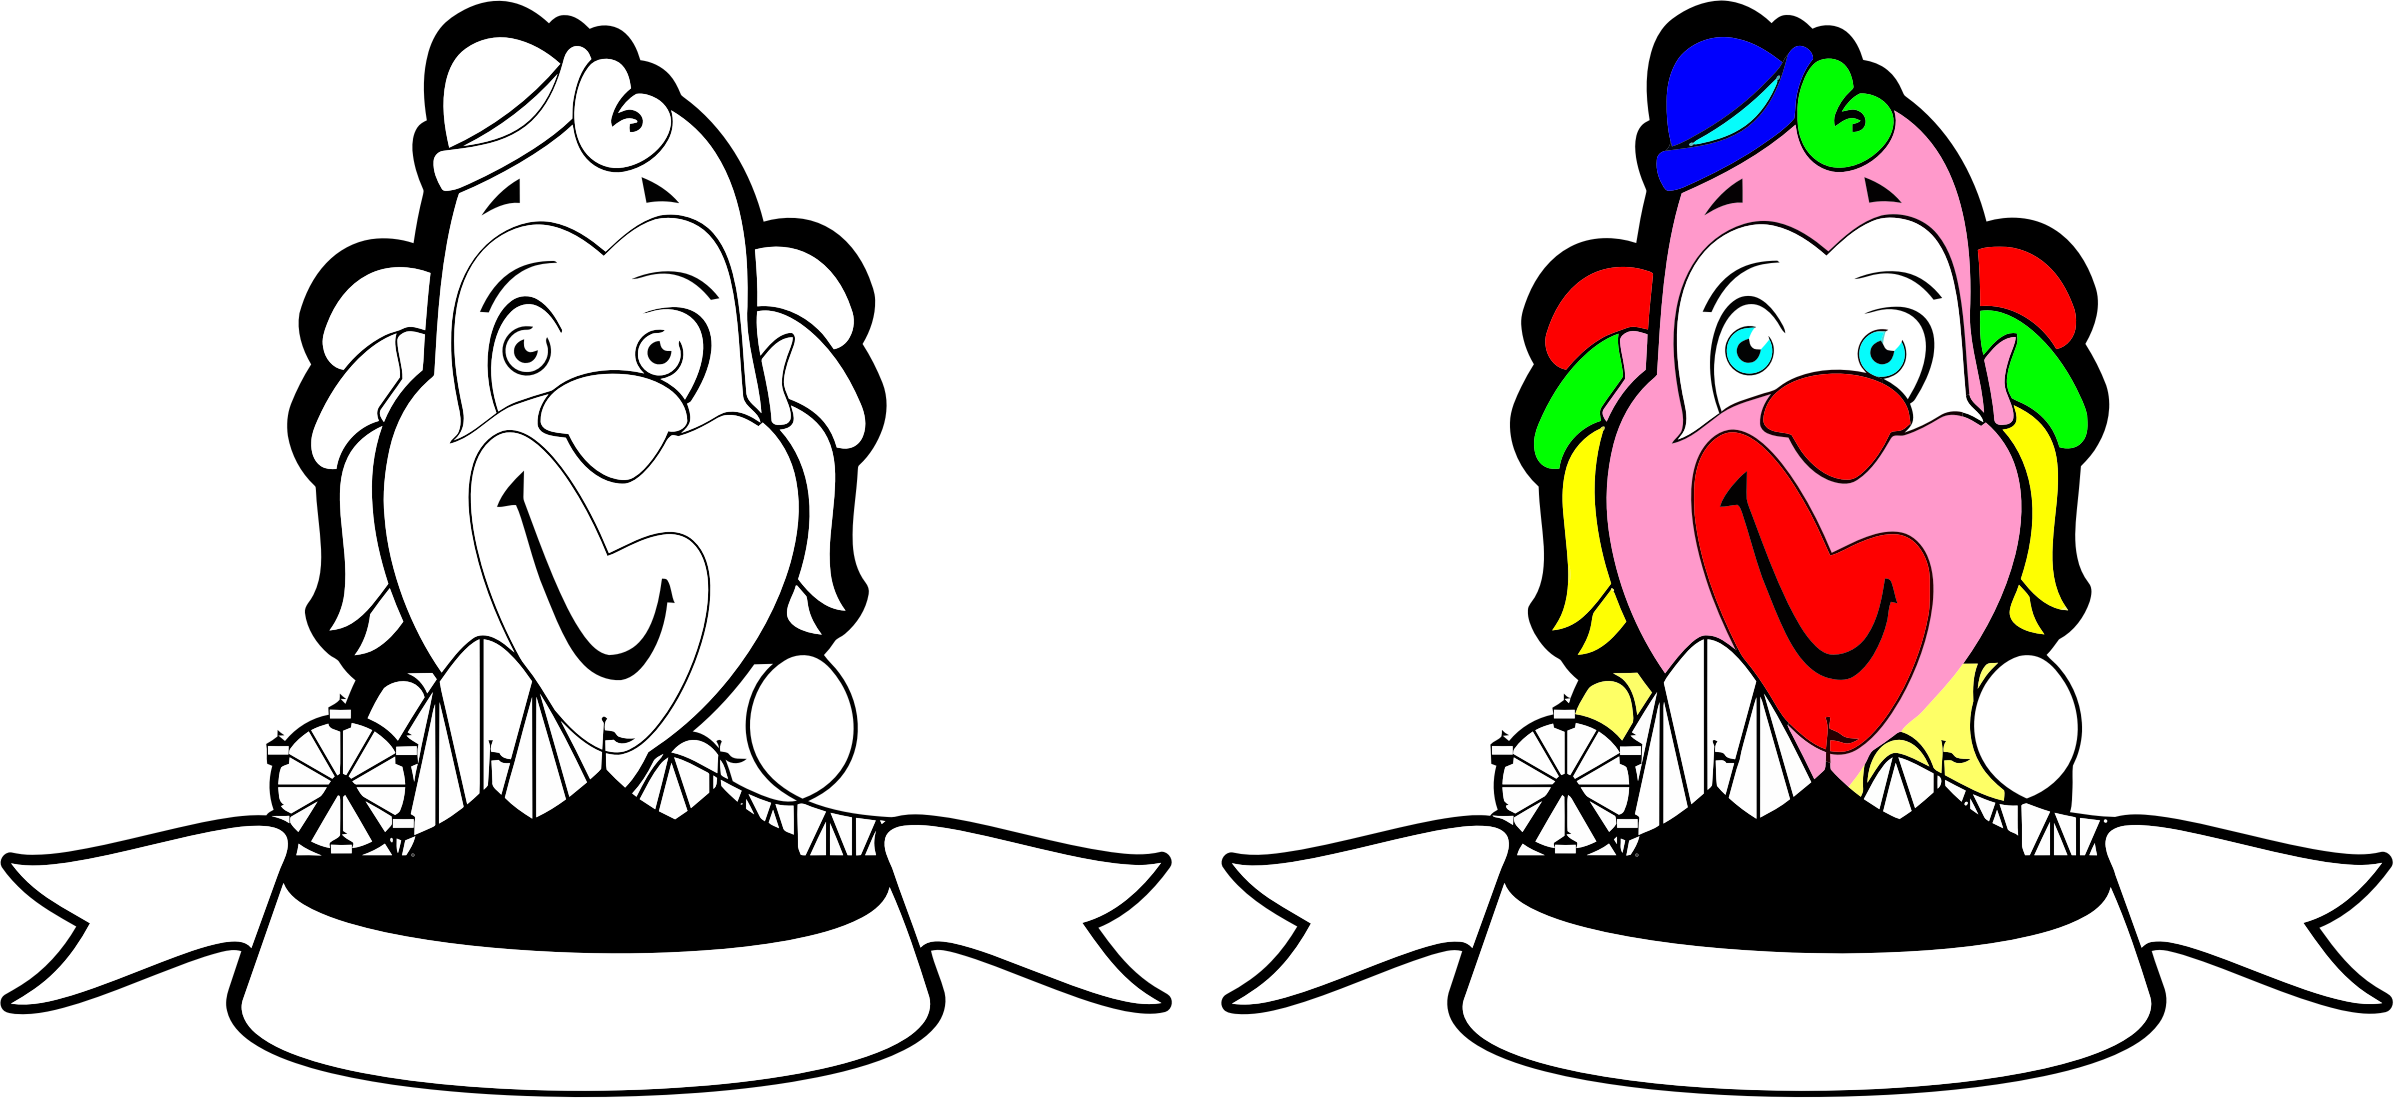 Clowns Banners by GDJ